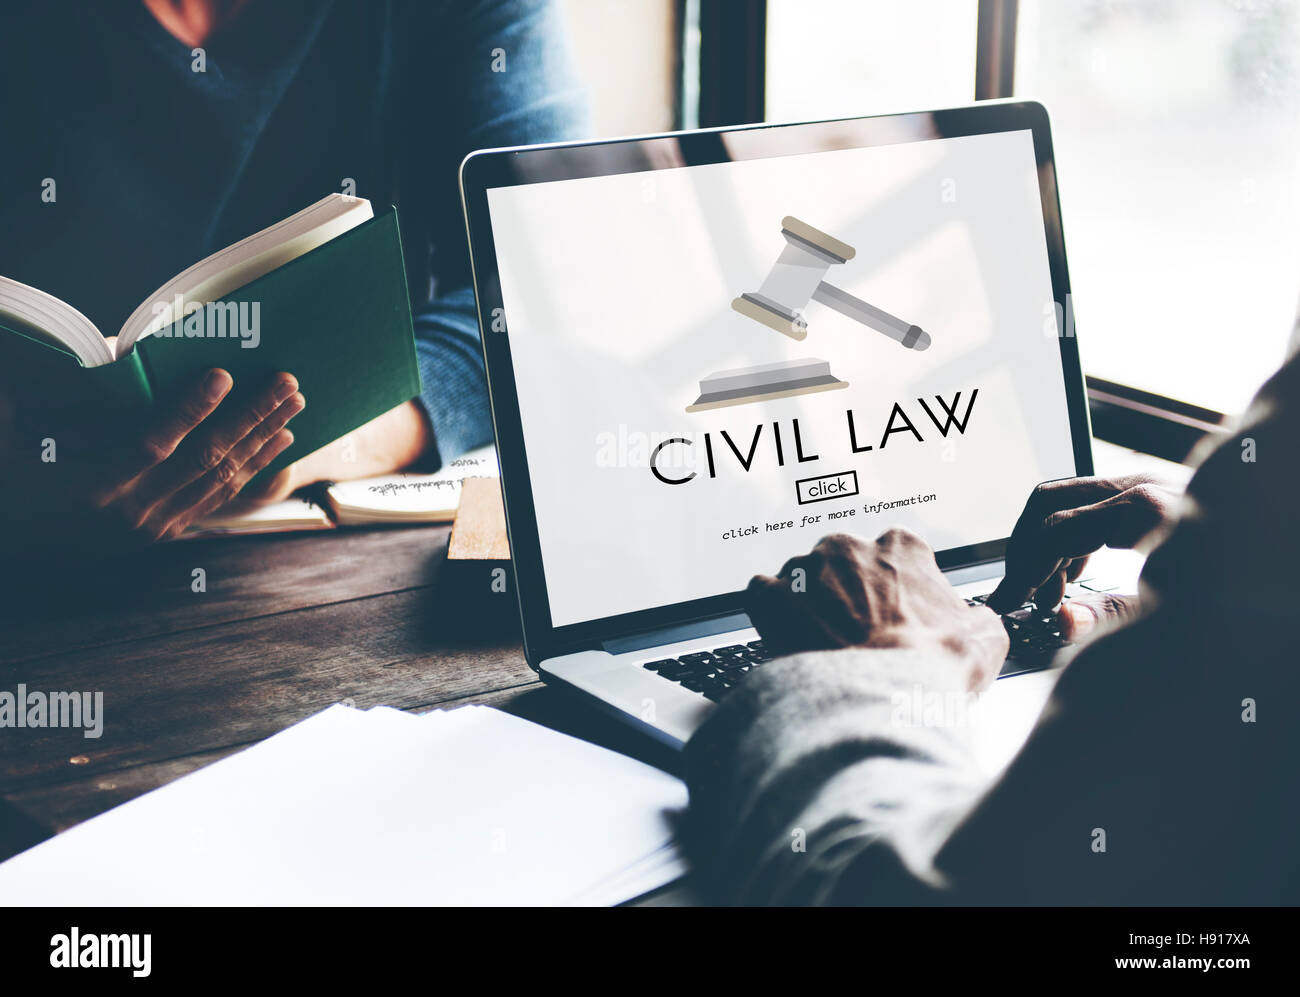 Civil Law Common Justice Legal Regulation Rights Concept - Stock Image